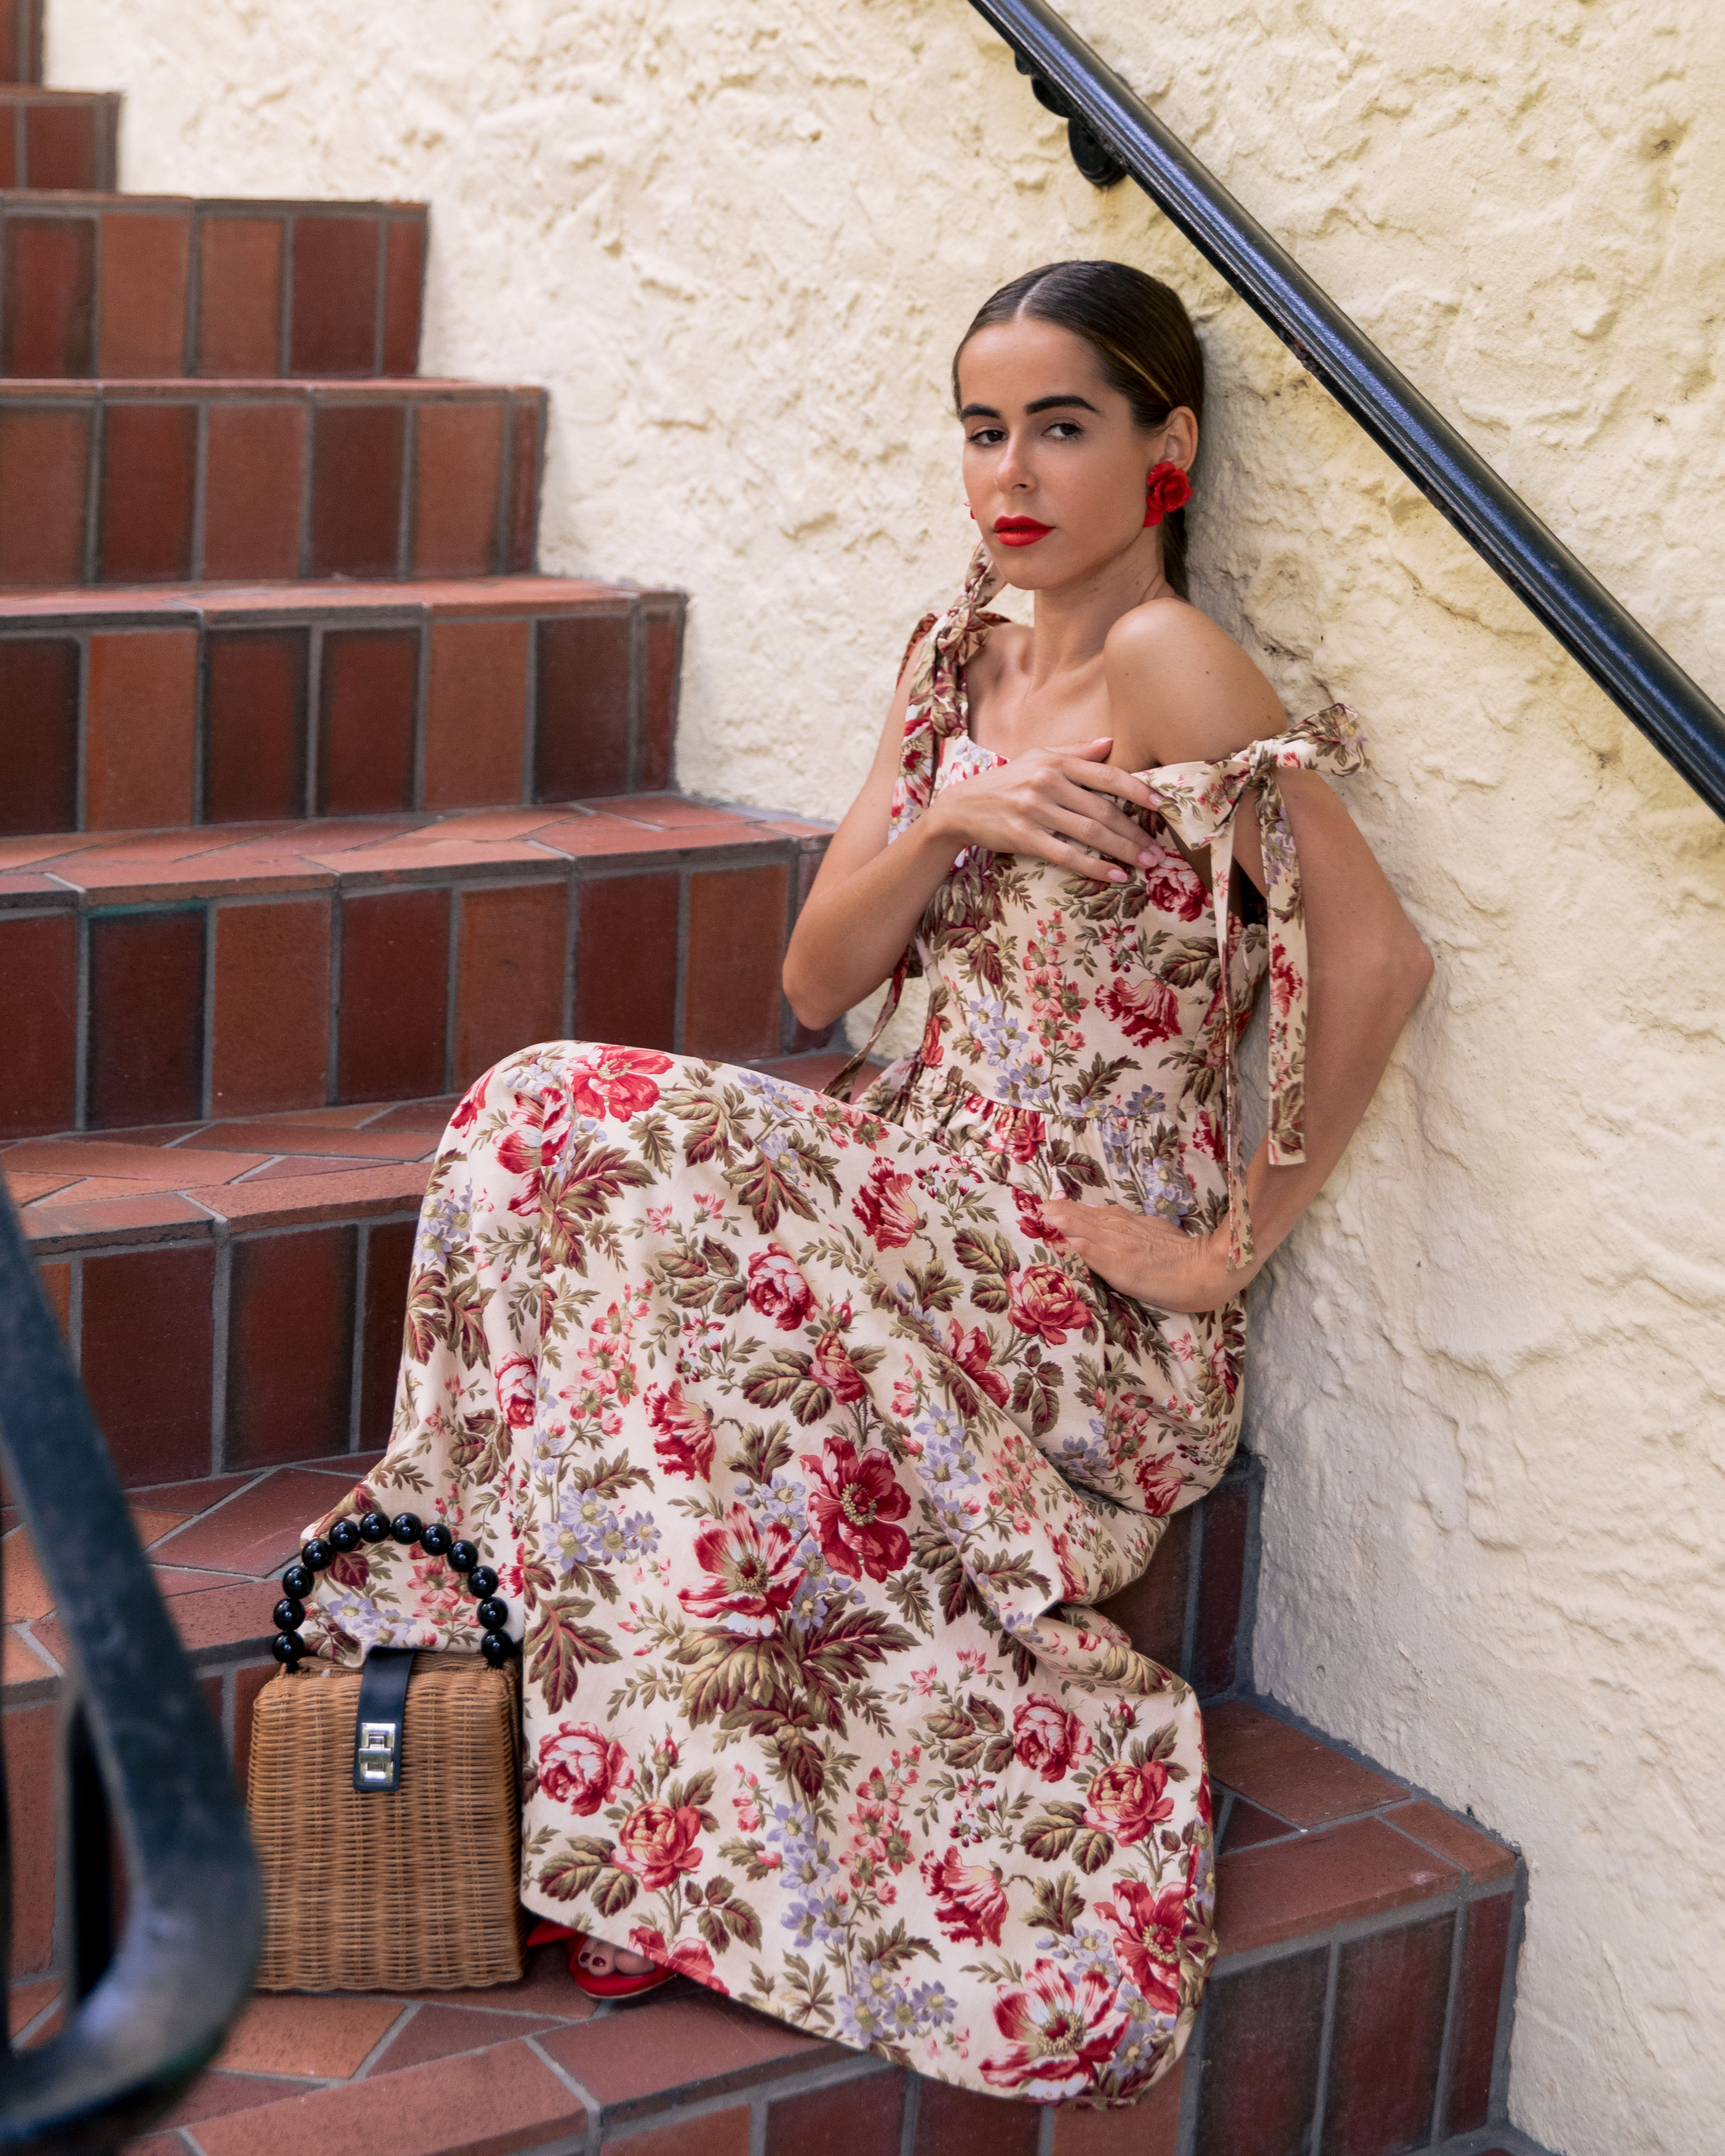 Style Blogger Stephanie Hill on The Style Bungalow wears ootd featuring Gal Meets Glam 2019 March Collection